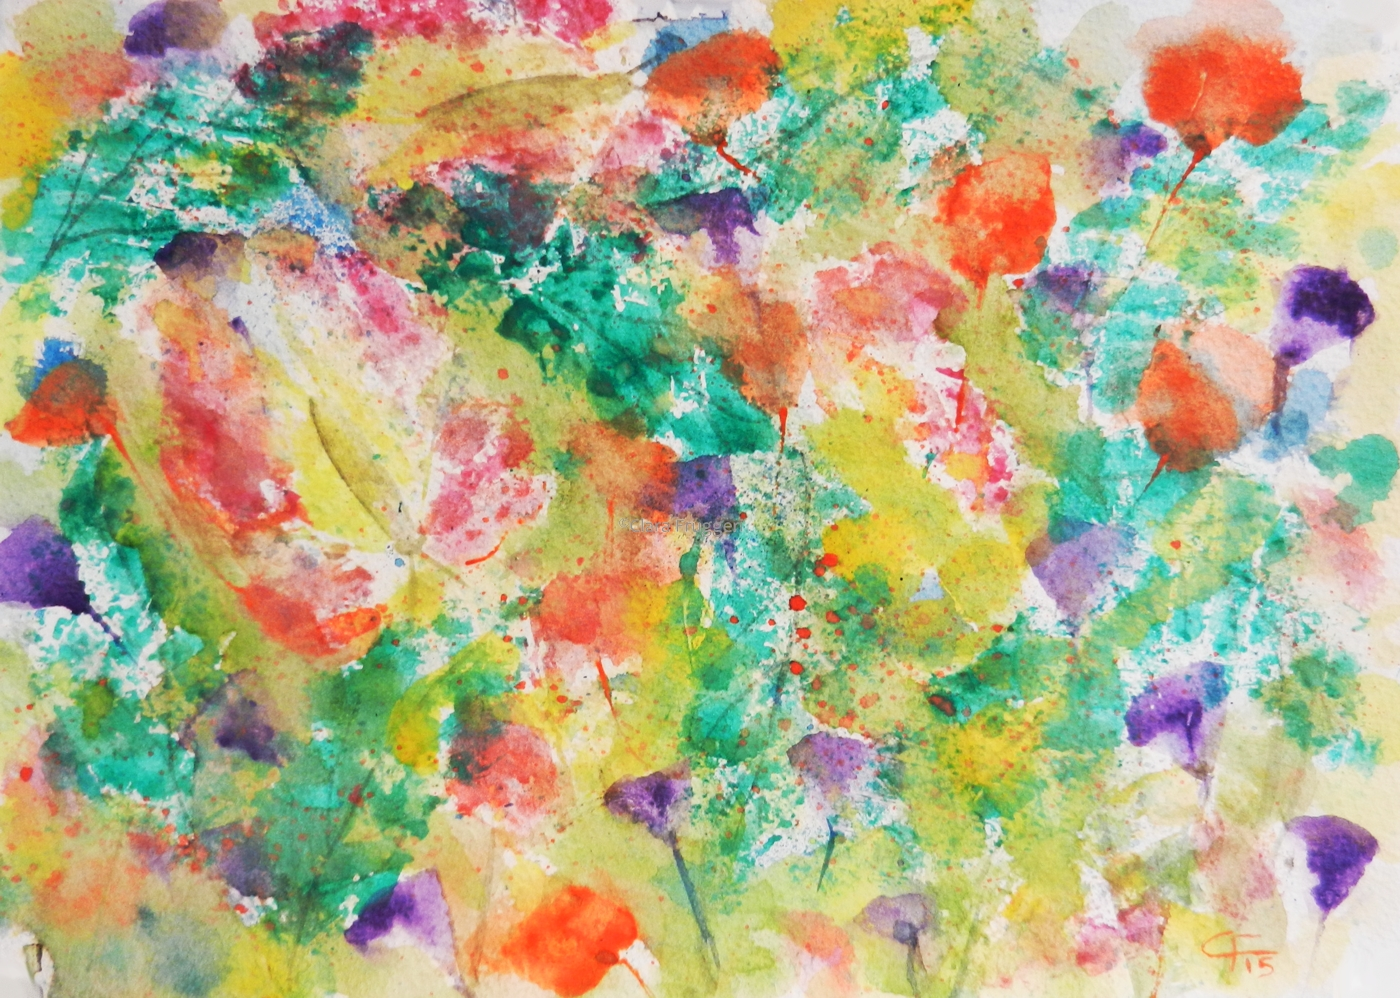 Life in moving,  Watercolor, Painting, Nature, Flowers, Leaves, Colors, Clara Fruggeri